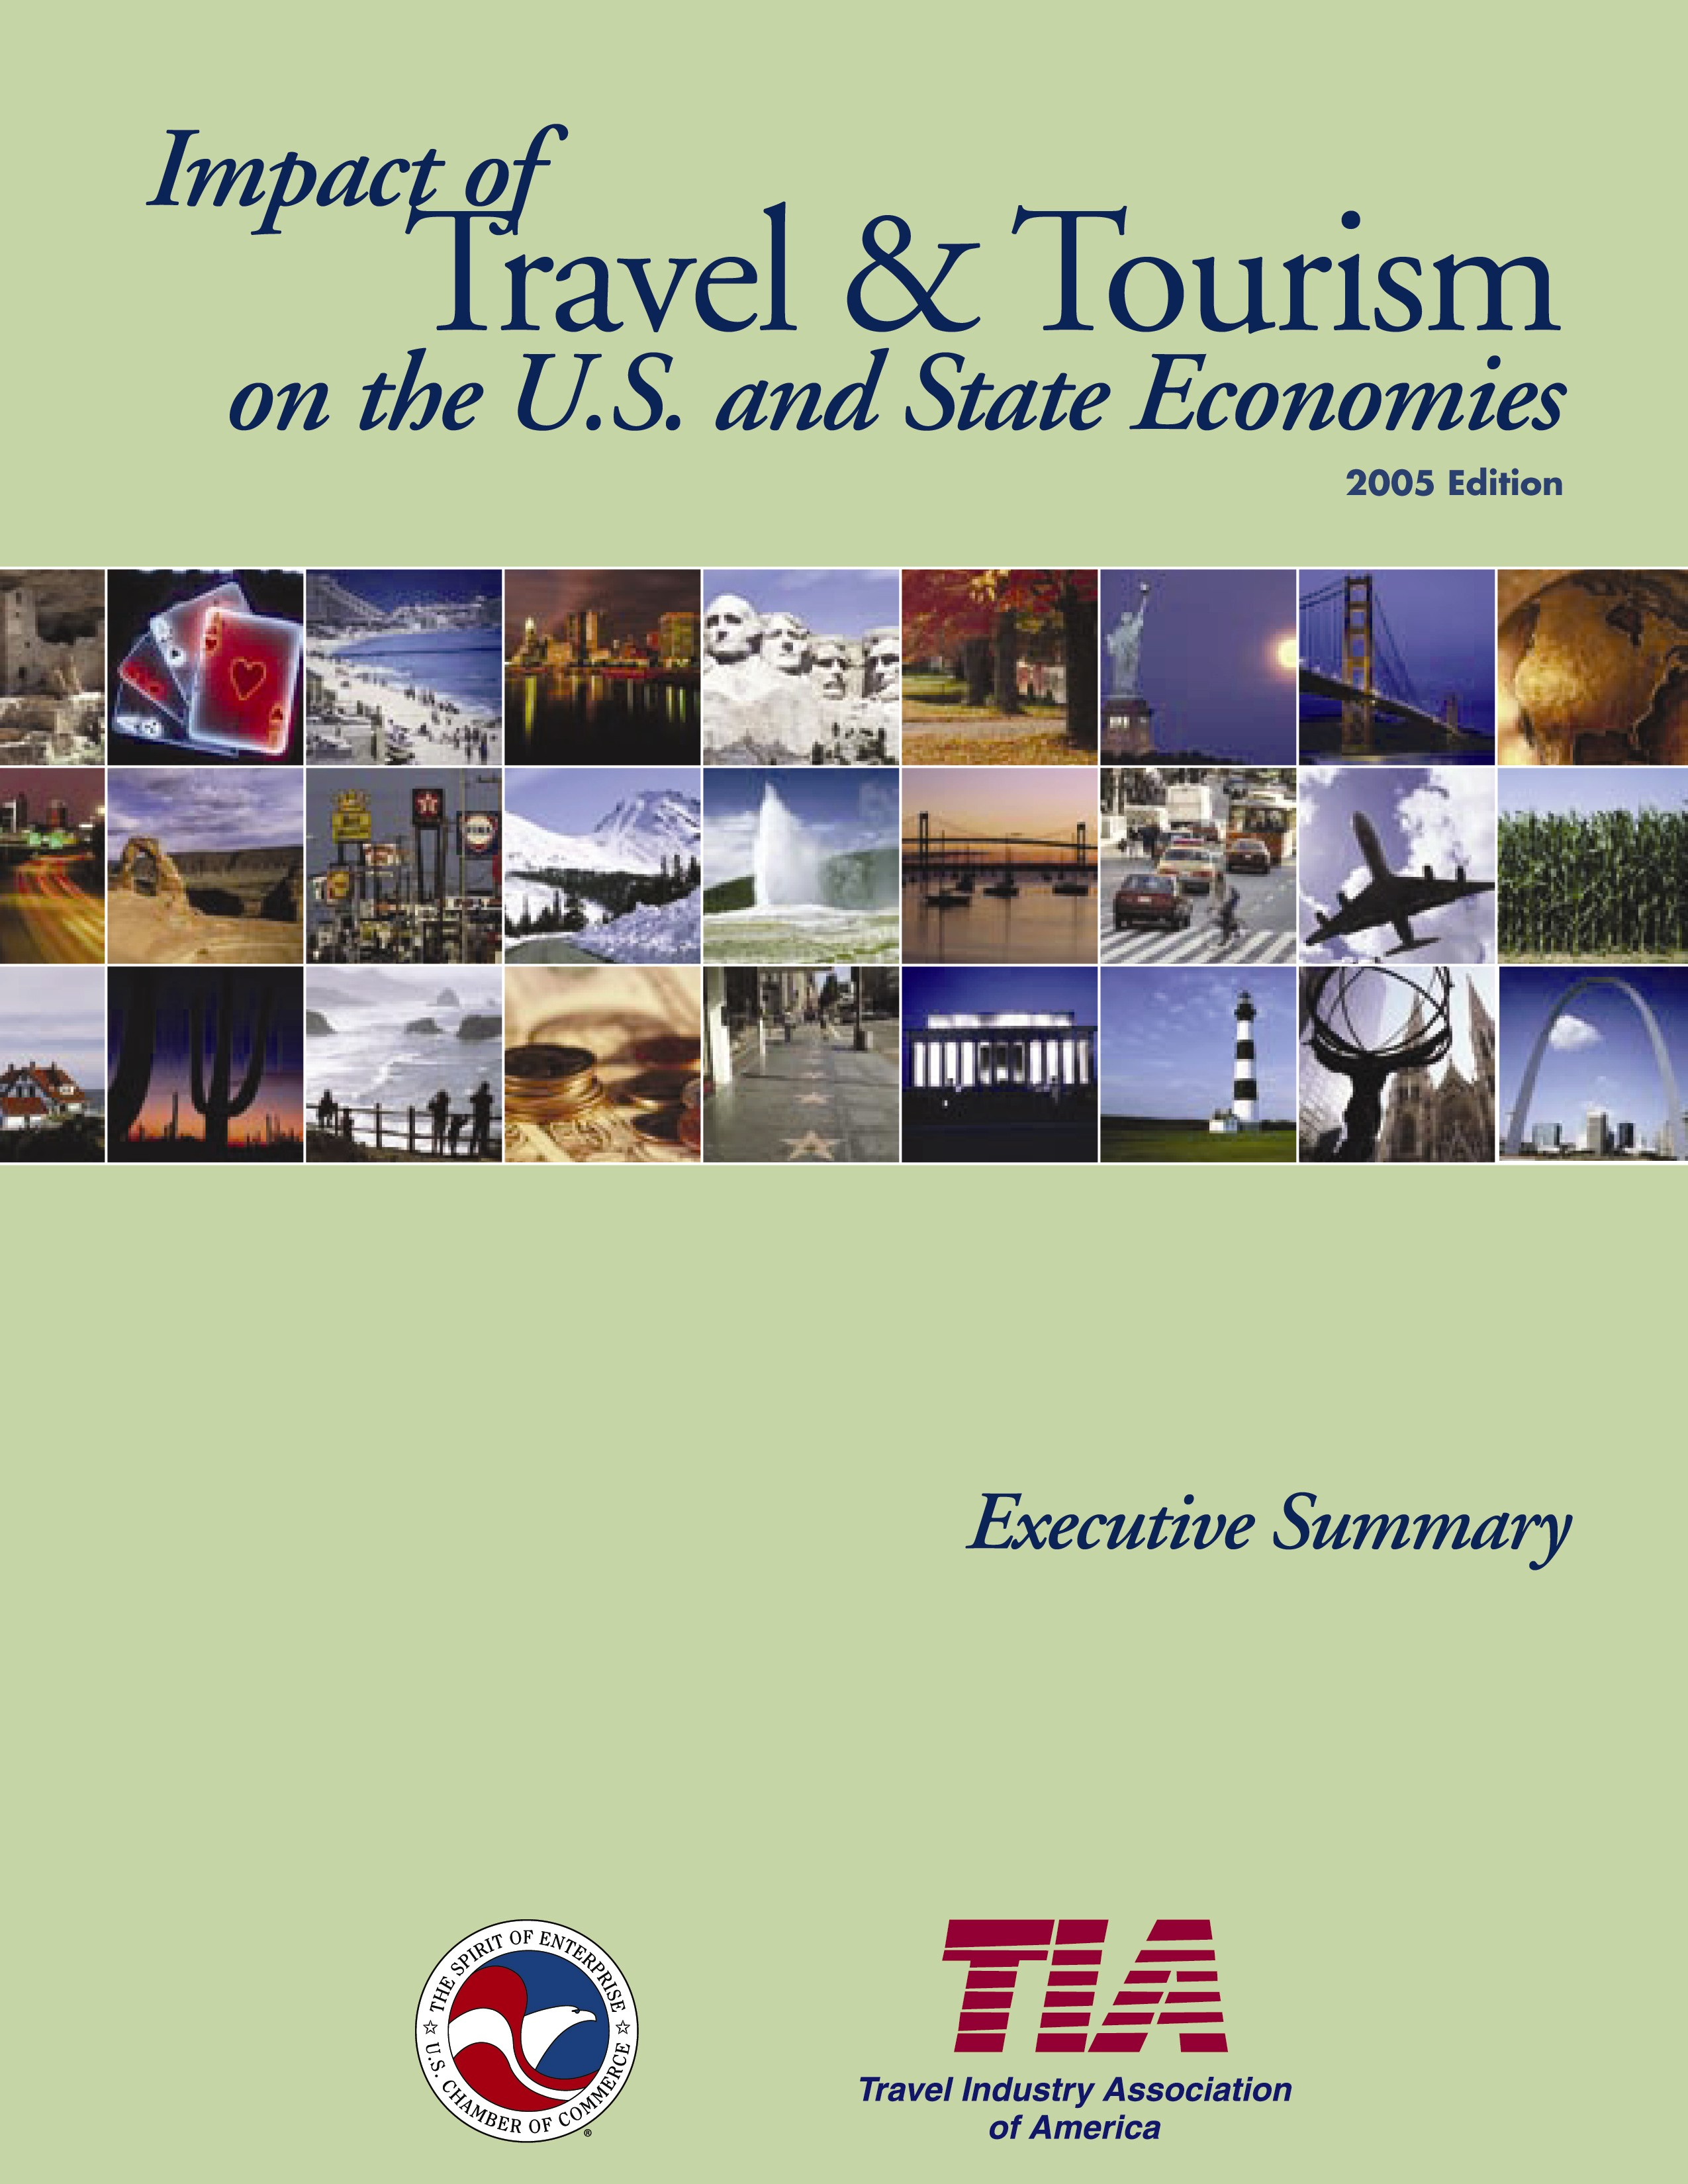 content first past project travel and tourism u s chamber content first was commissioned by the u s chamber of commerce to prepare a state by state report on the economic impact of the travel and tourism industry